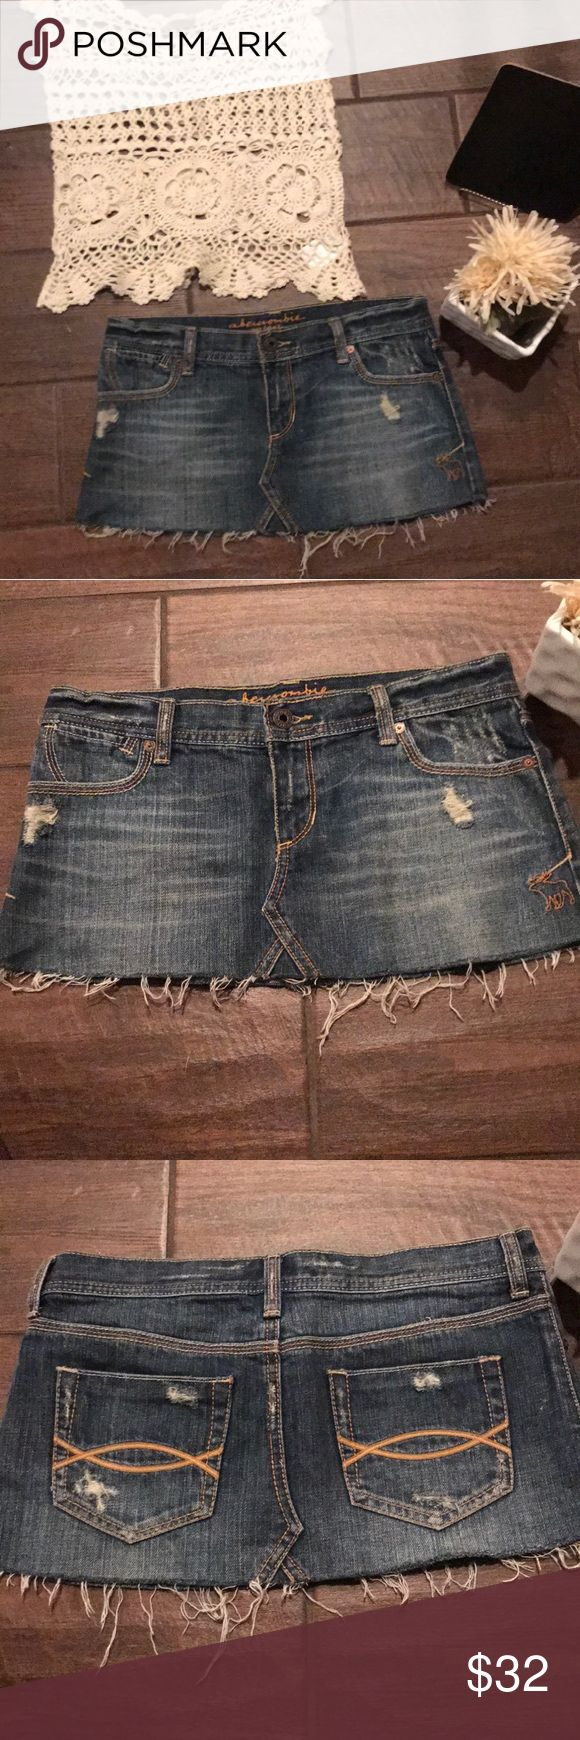 Blue jean Mini Skirt 💕 His blue jean mini skirt is distressed at the bottom. There are no stains or holes. The skirt is 9 inches from top to bottom hem. The top is also in our closet. Shop the entire look. 💕 Abercrombie & Fitch Skirts Mini